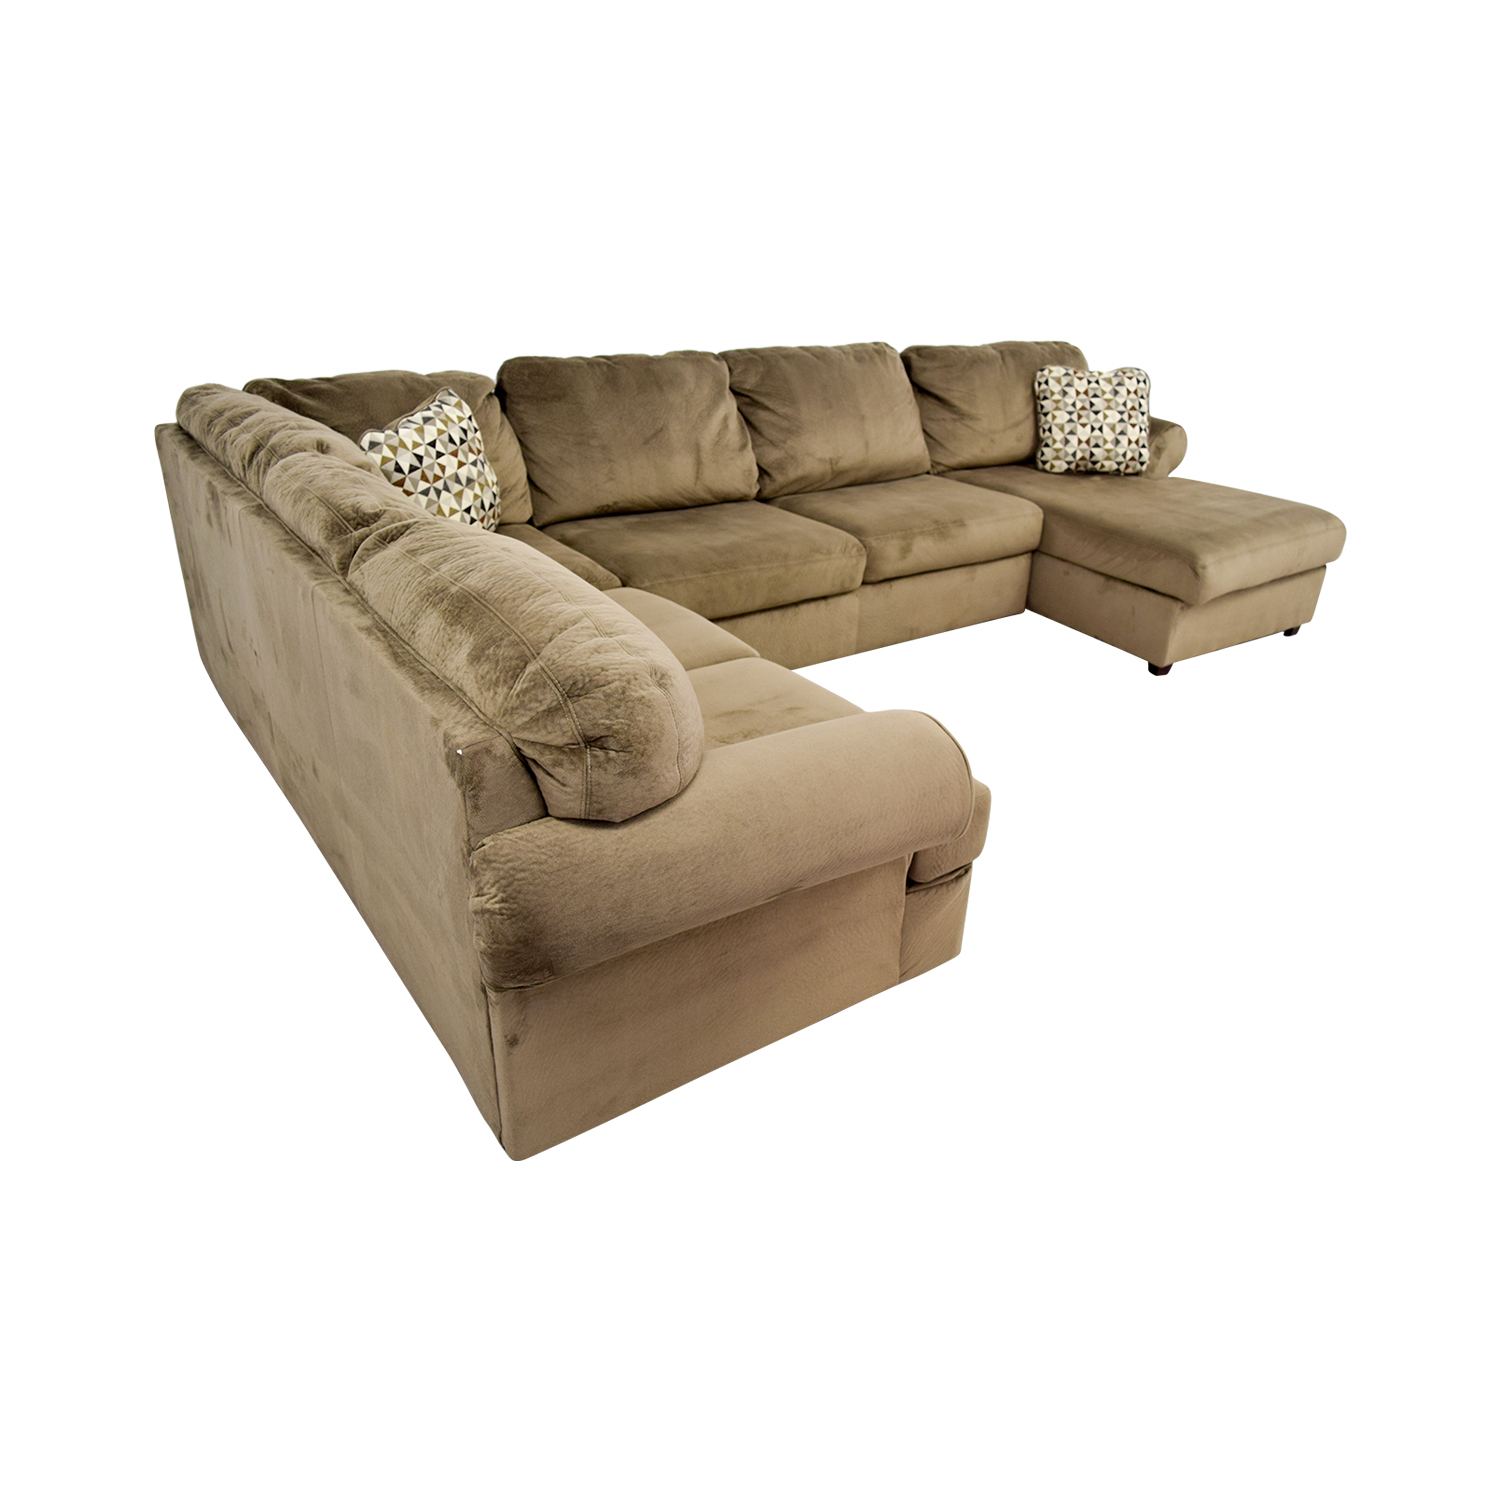 54 off ashley furniture ashley furniture jessa place for Place furniture